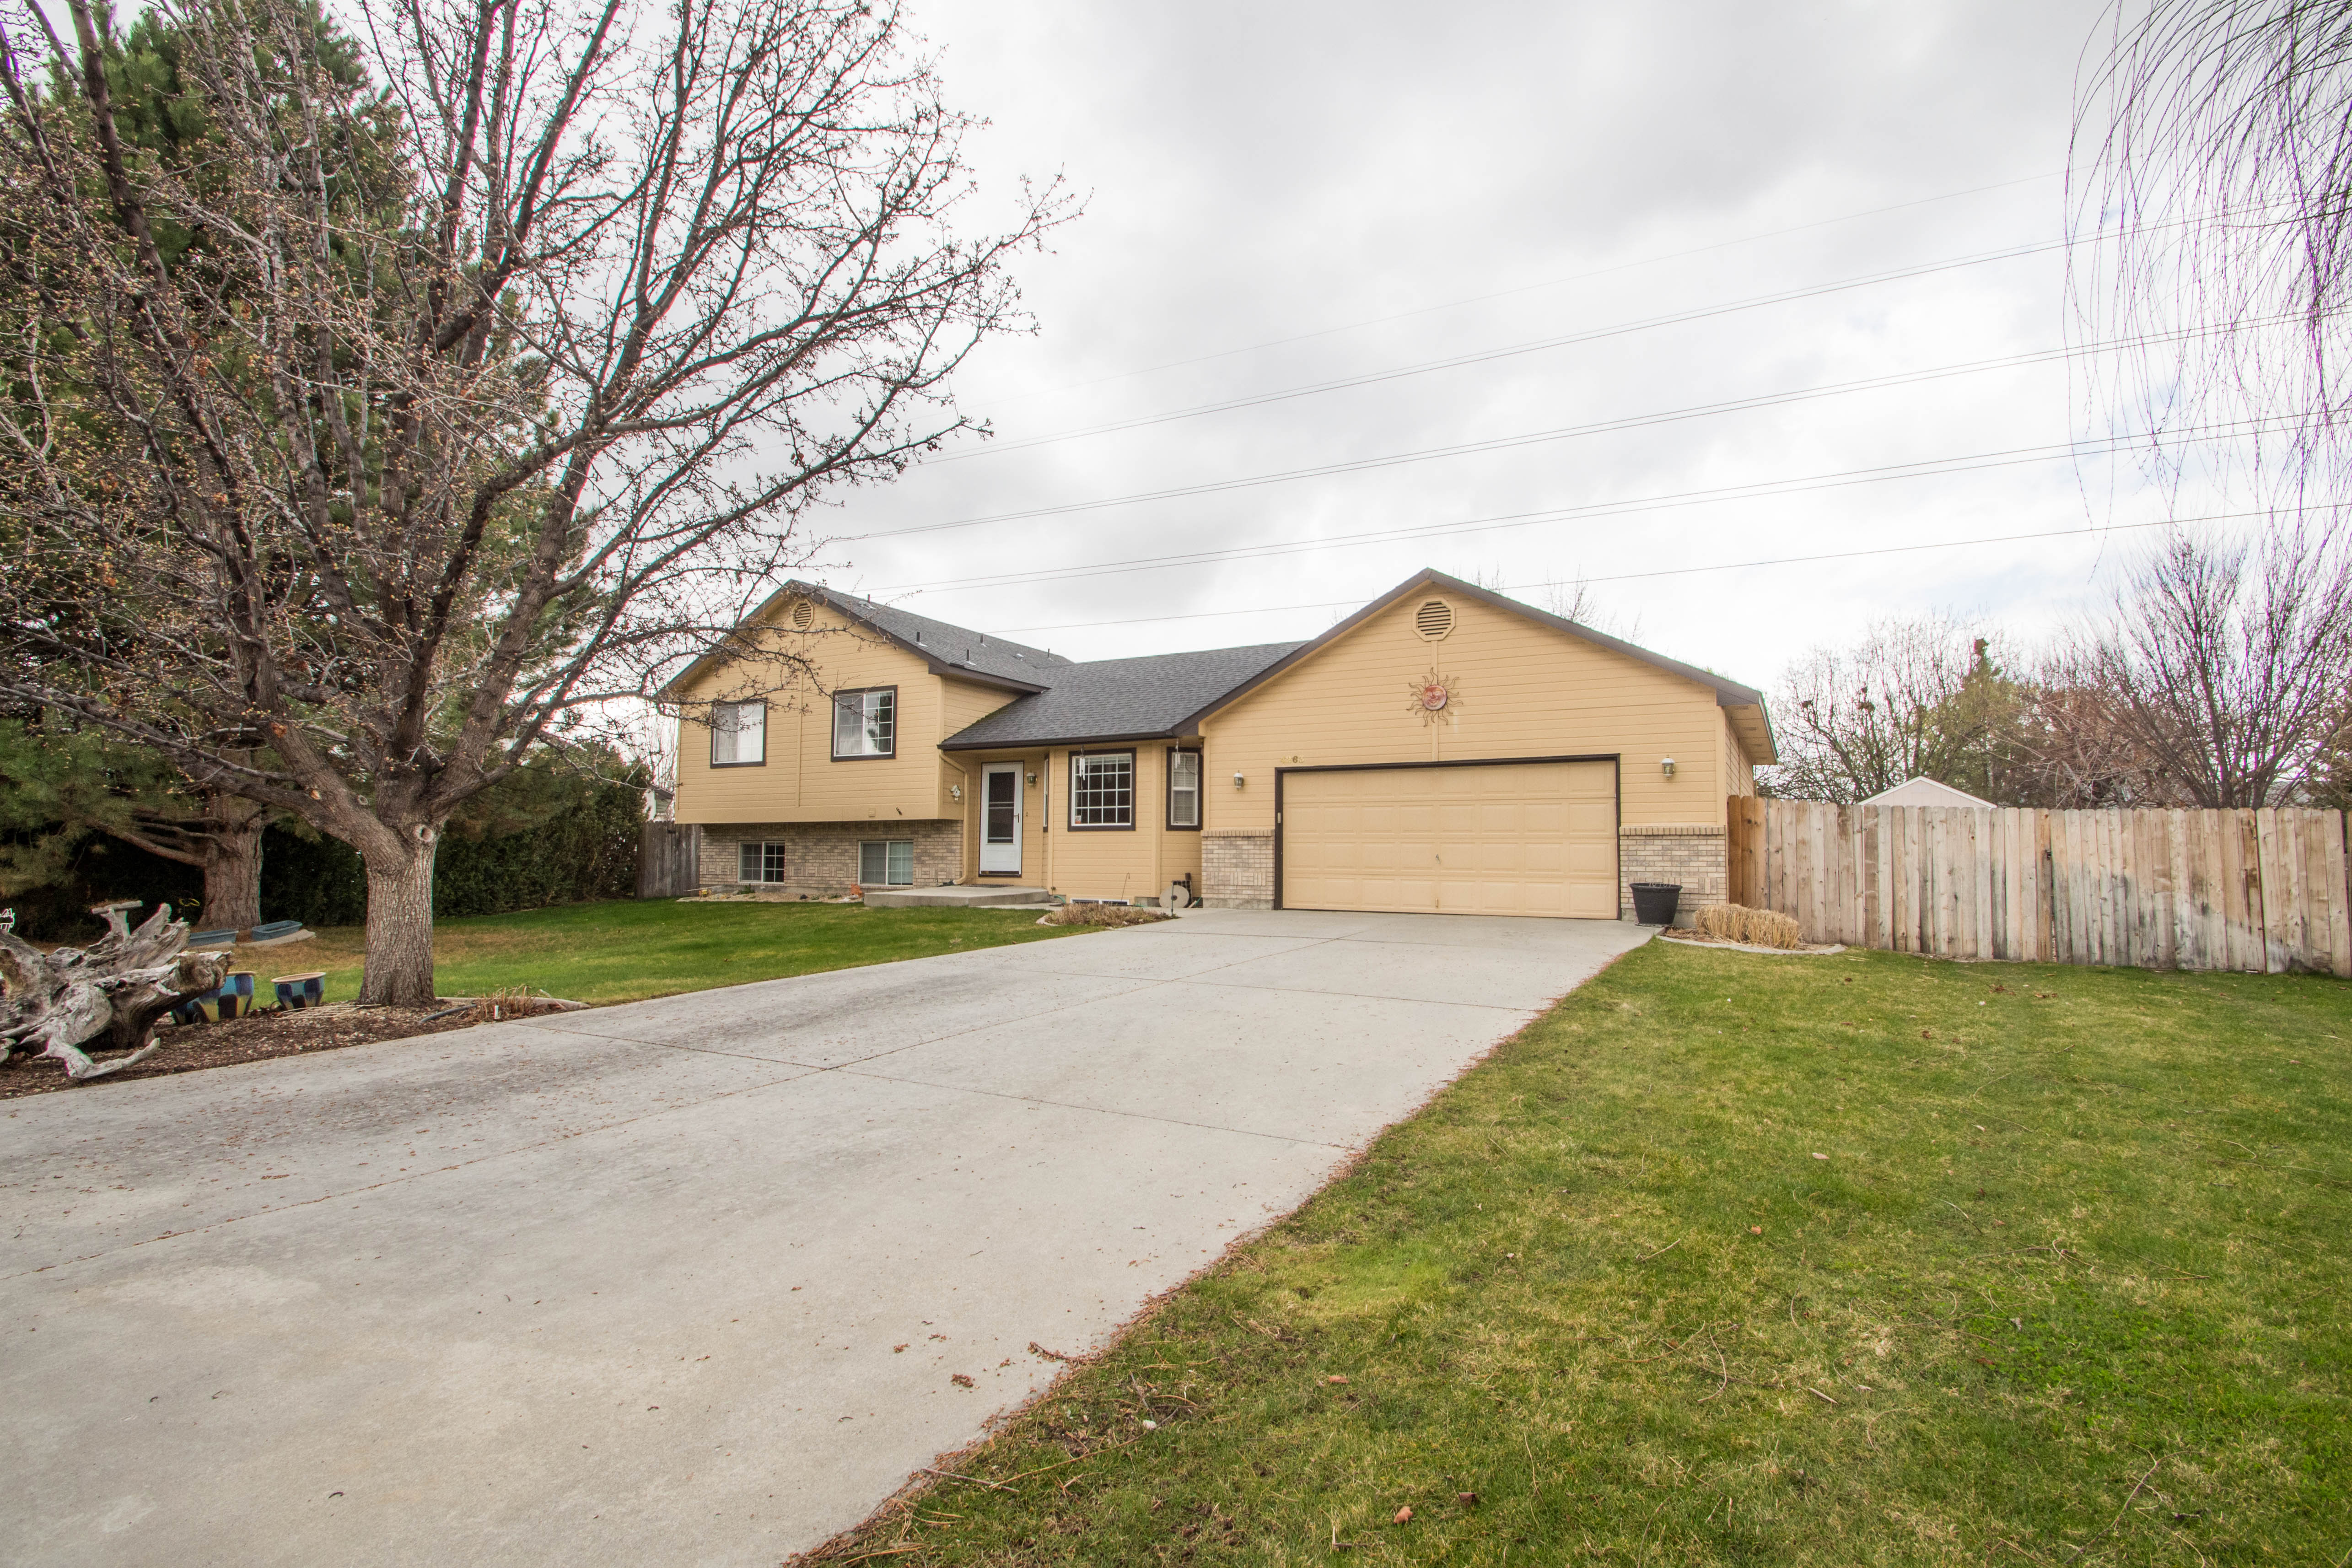 Fantastic 4 Level 5 Bedroom 3 Bathroom Home In Boise With RV Parking